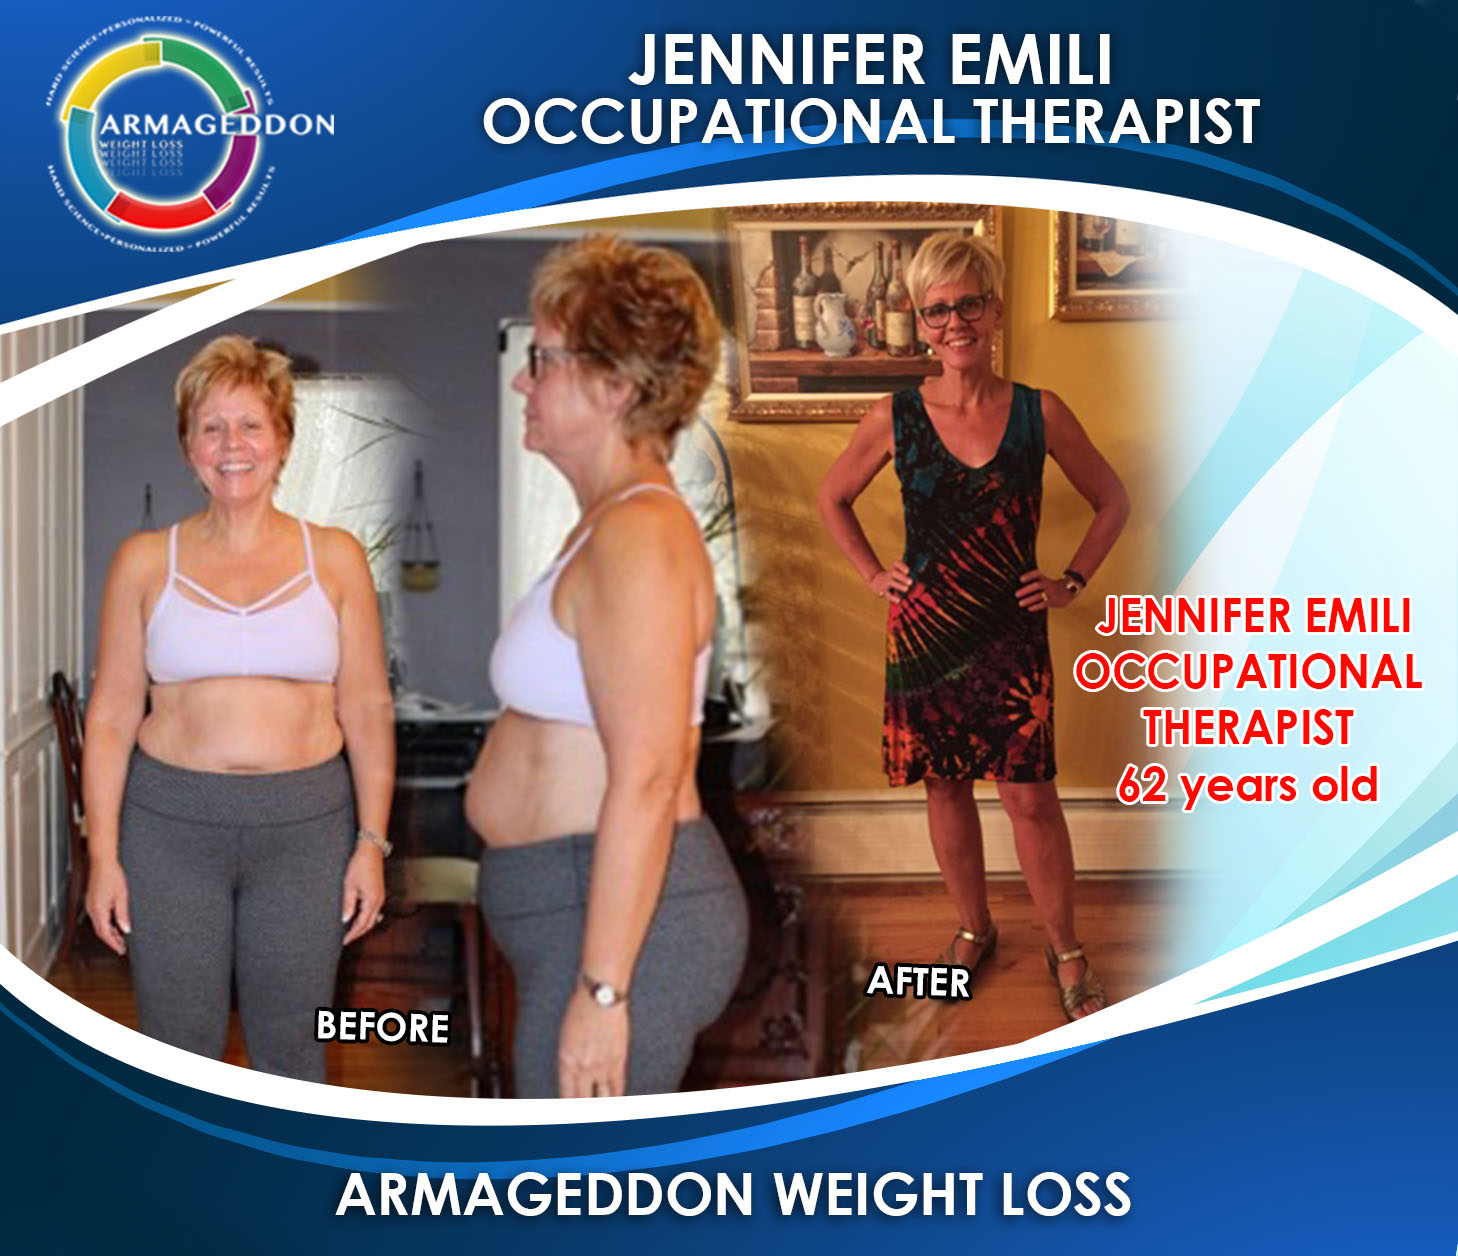 Jennifer Emili - Occupational Therapist - Armageddon Weight Loss - Best weight loss DVD for women over 60, best exercise program for women over 60